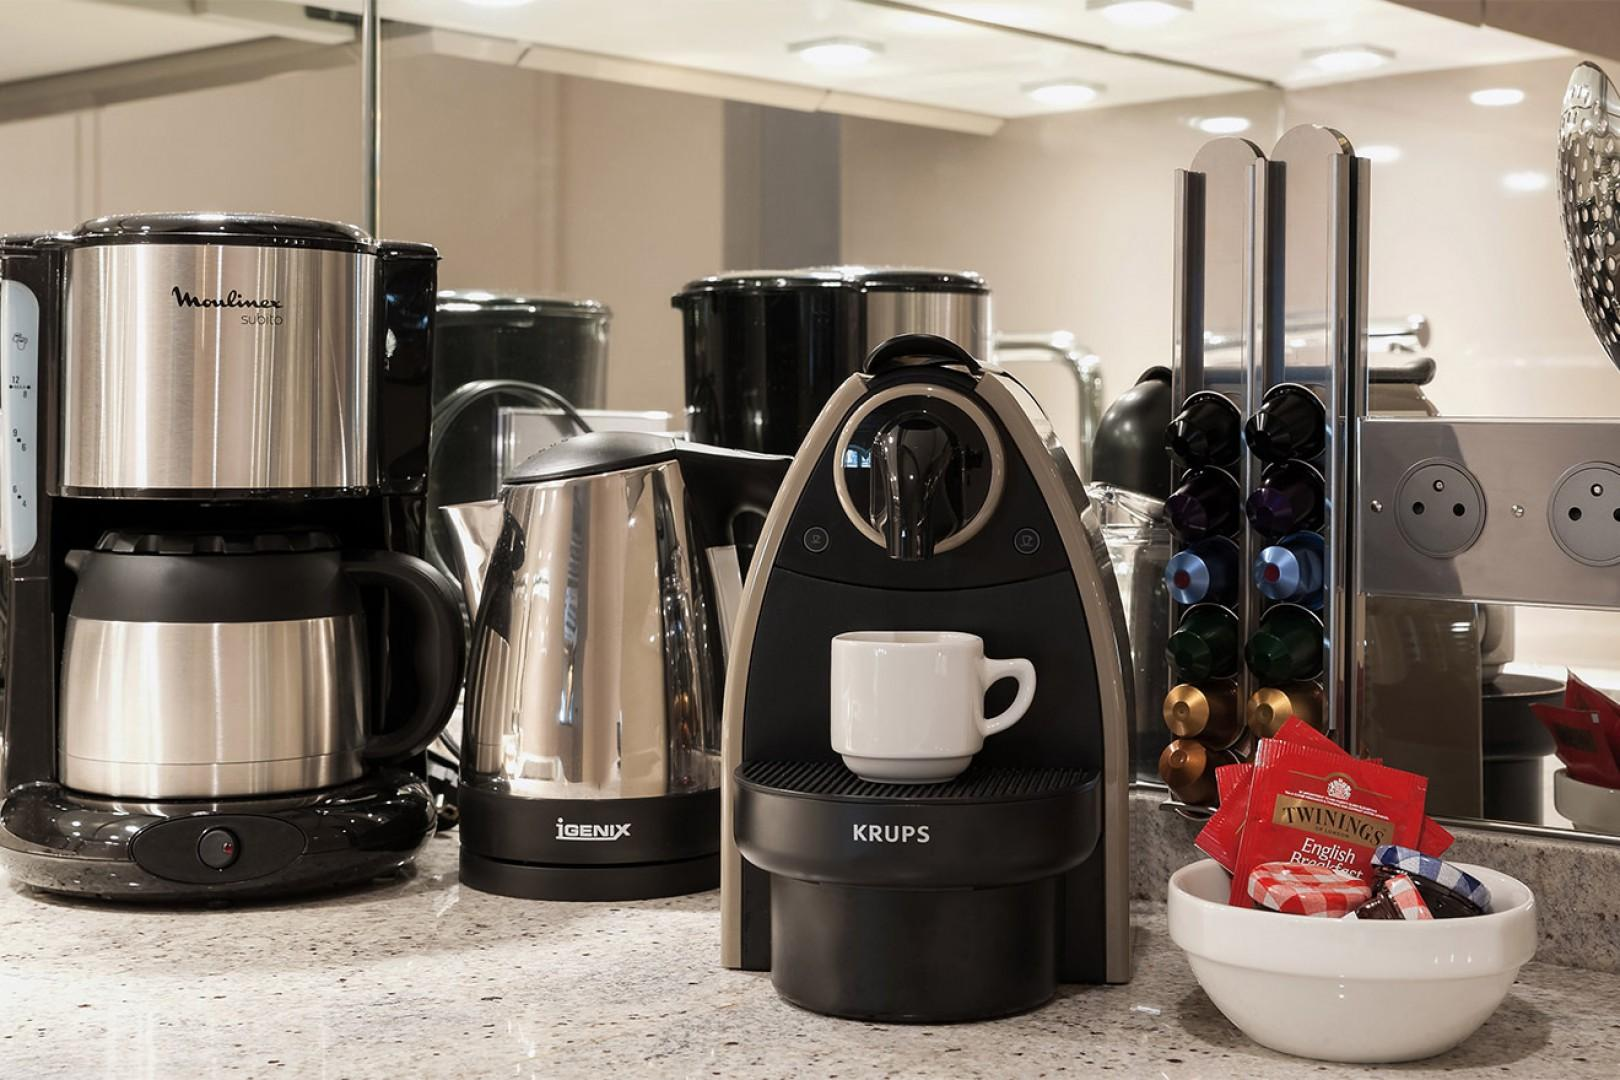 Wake up to freshly brewed coffee at home!